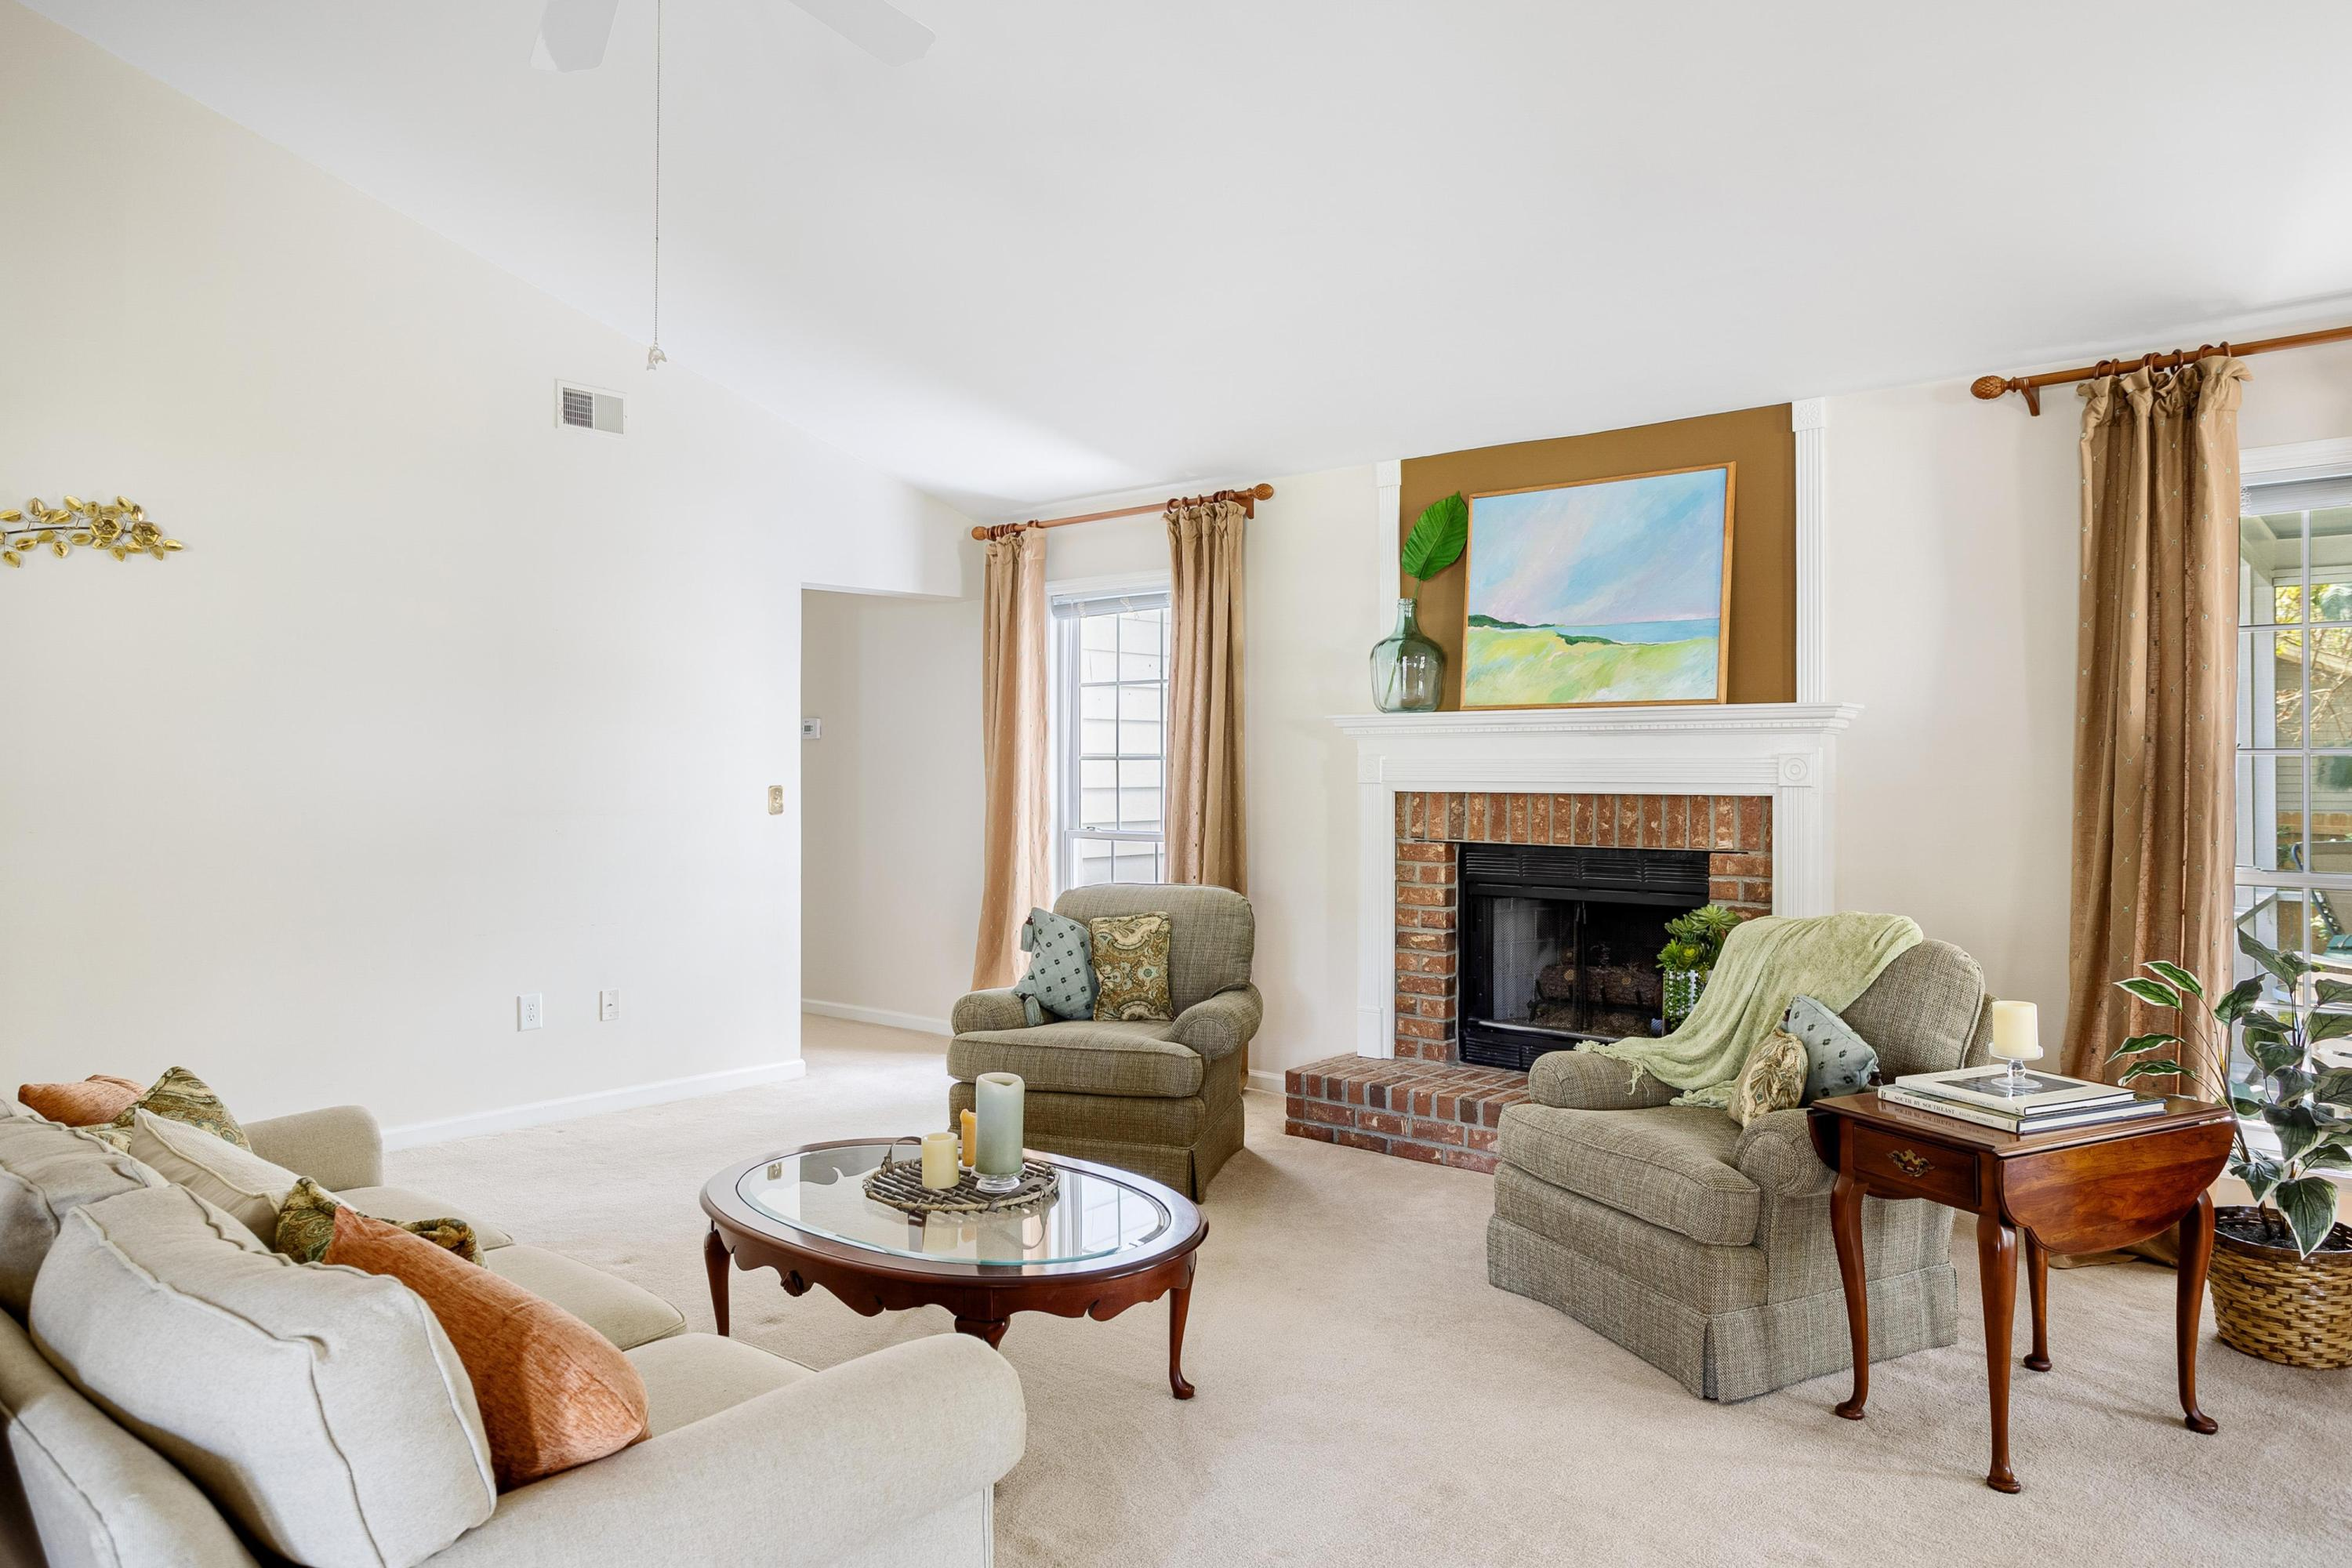 Coopers Pointe Homes For Sale - 750 Lookout Pointe, Mount Pleasant, SC - 2